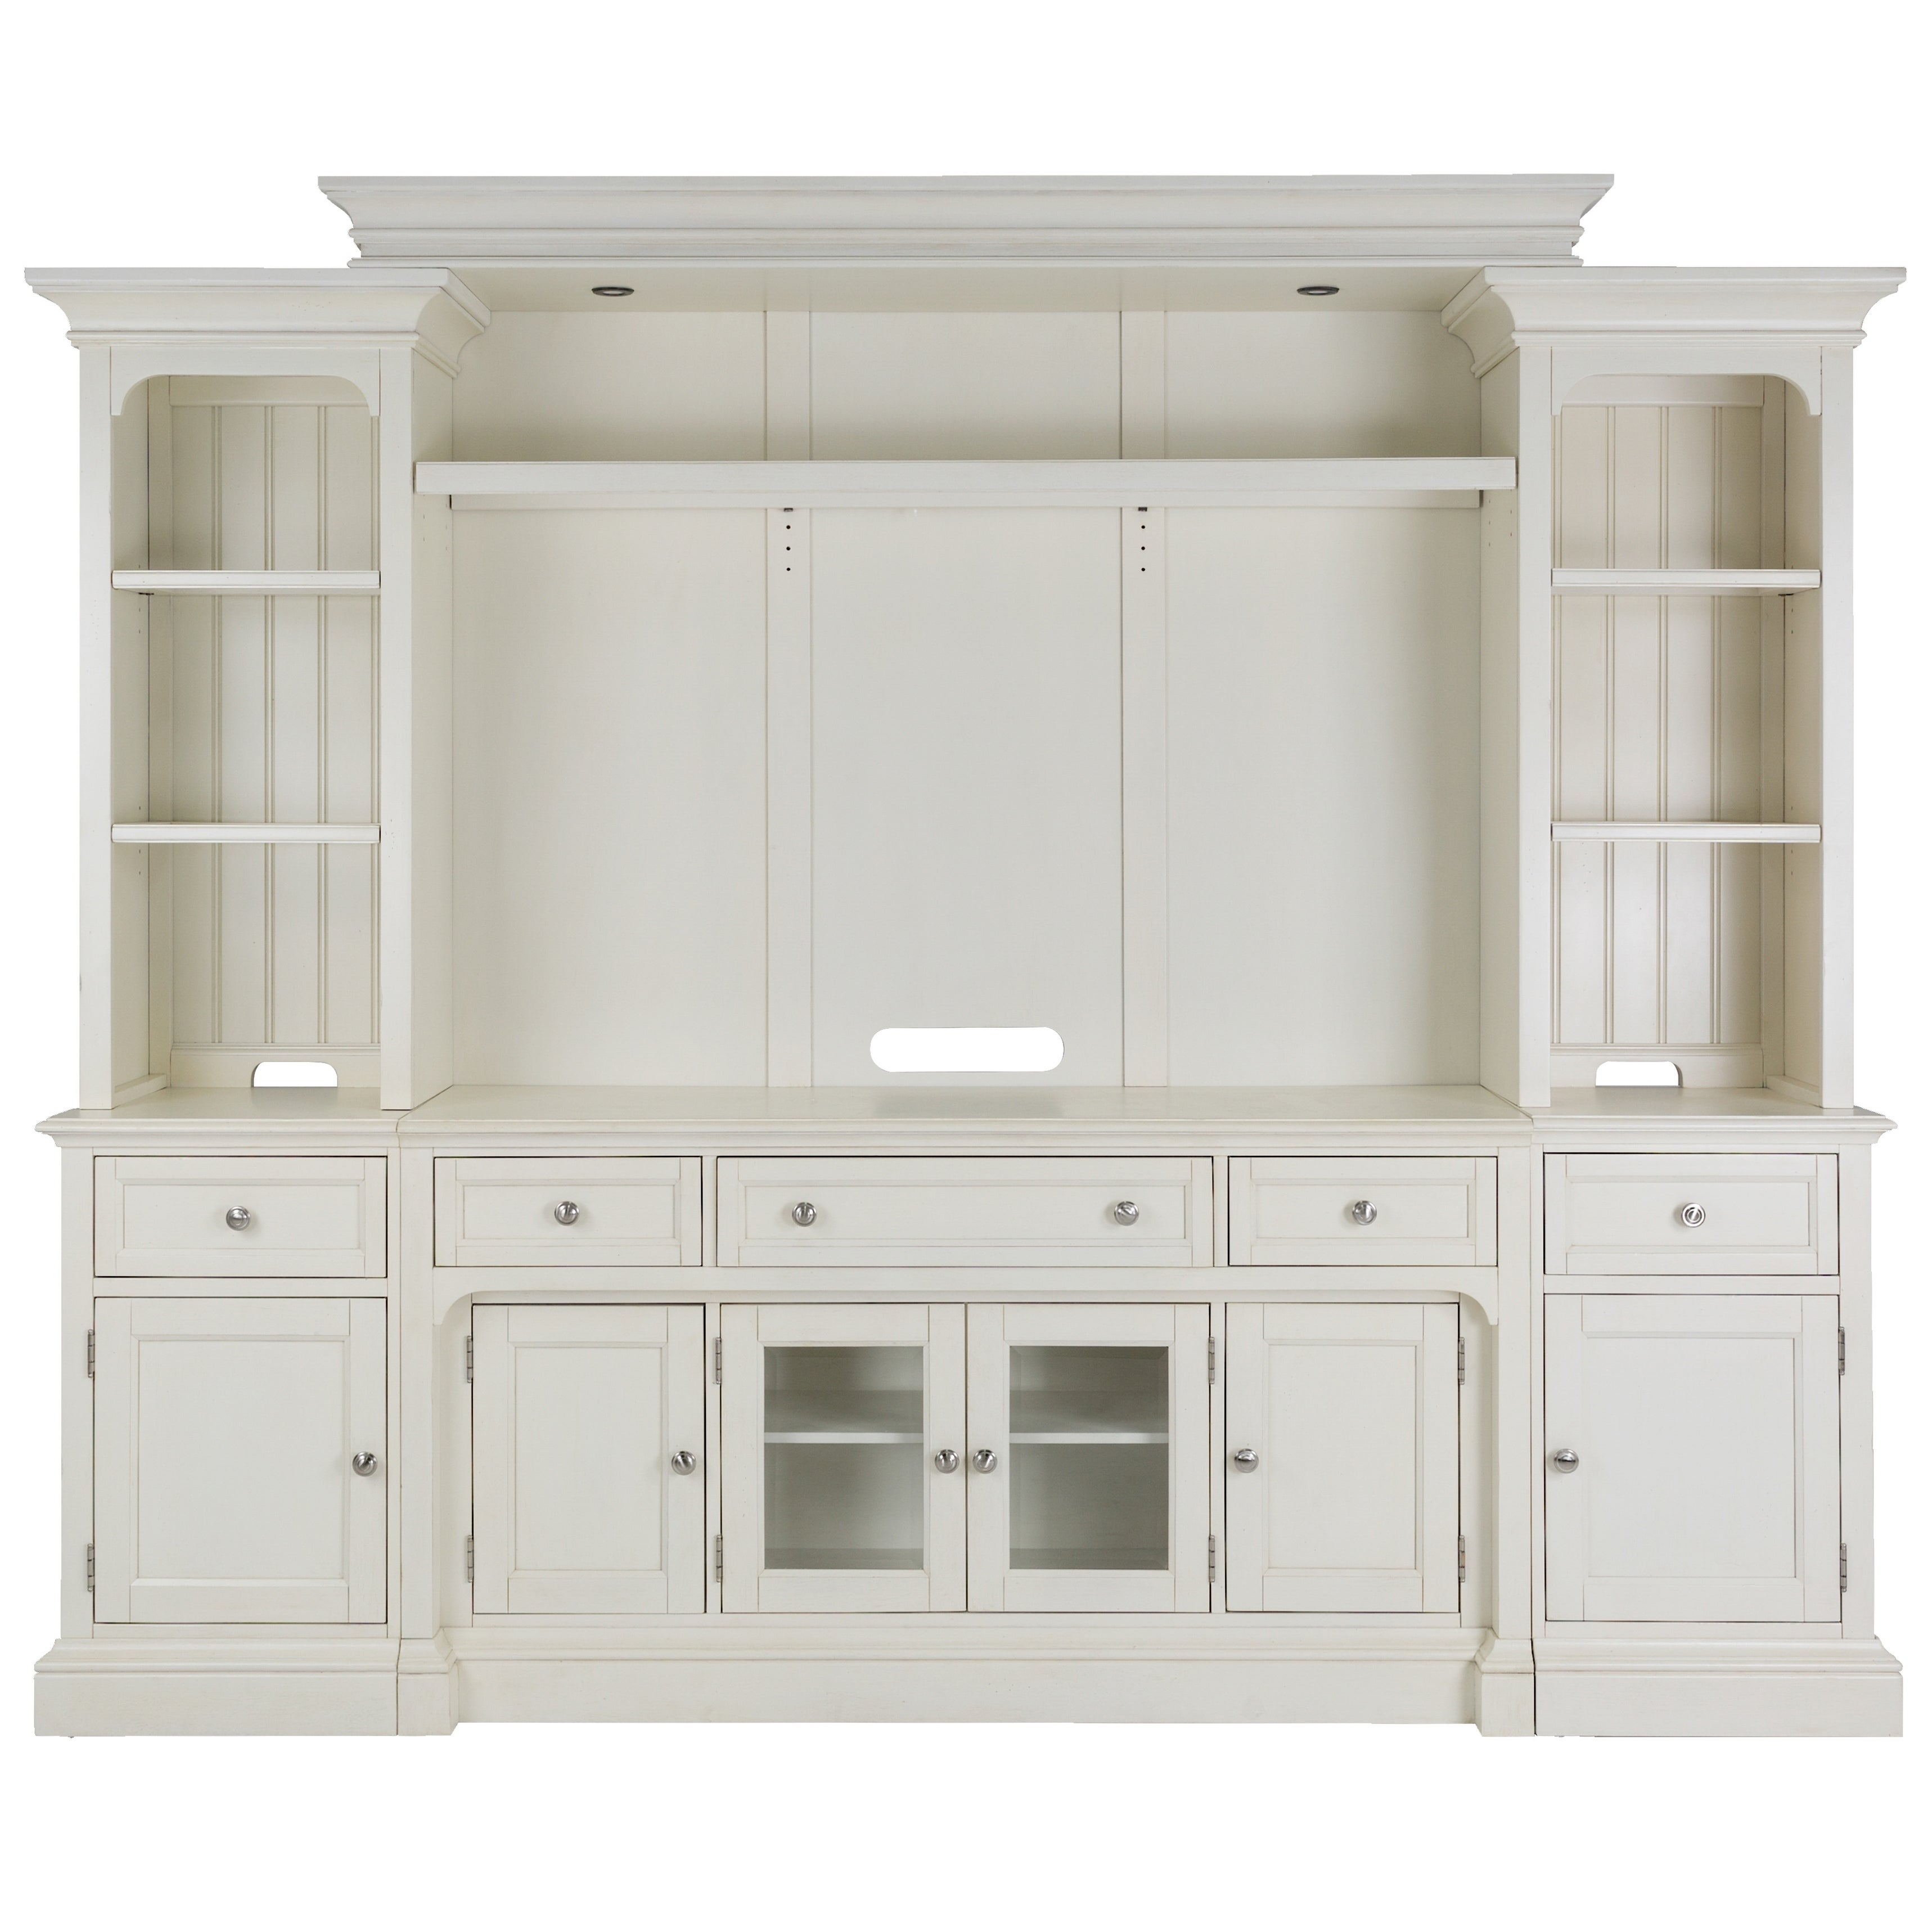 b tv furniture media inch shop large and stand cottage wolf gardiner entertainment centers products bookcases